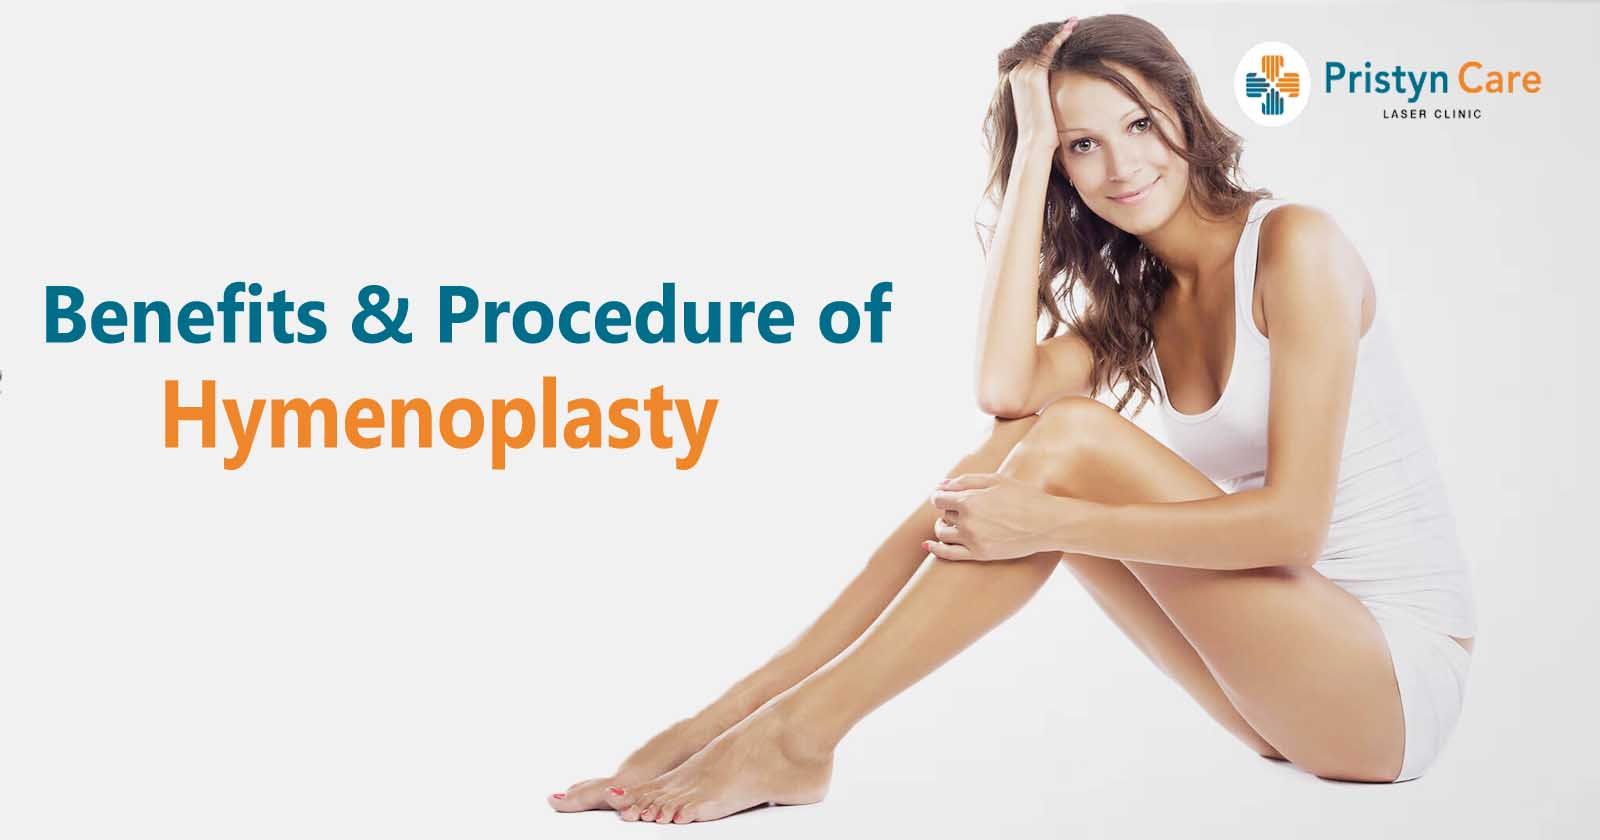 Benefits & Procedure of Hymenoplasty